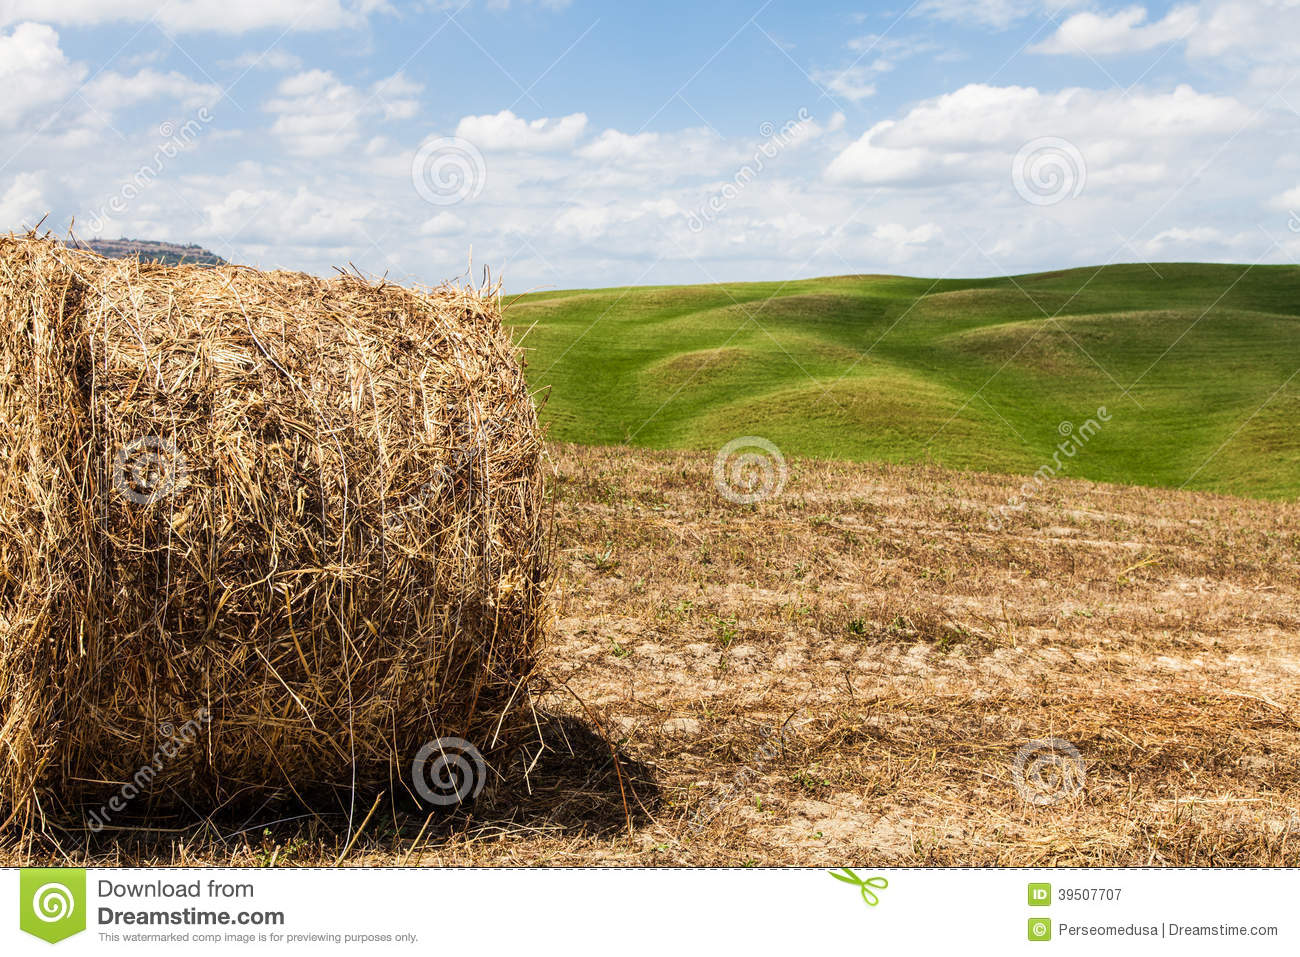 Tuscany Agriculture Stock Photo - Image: 39507707